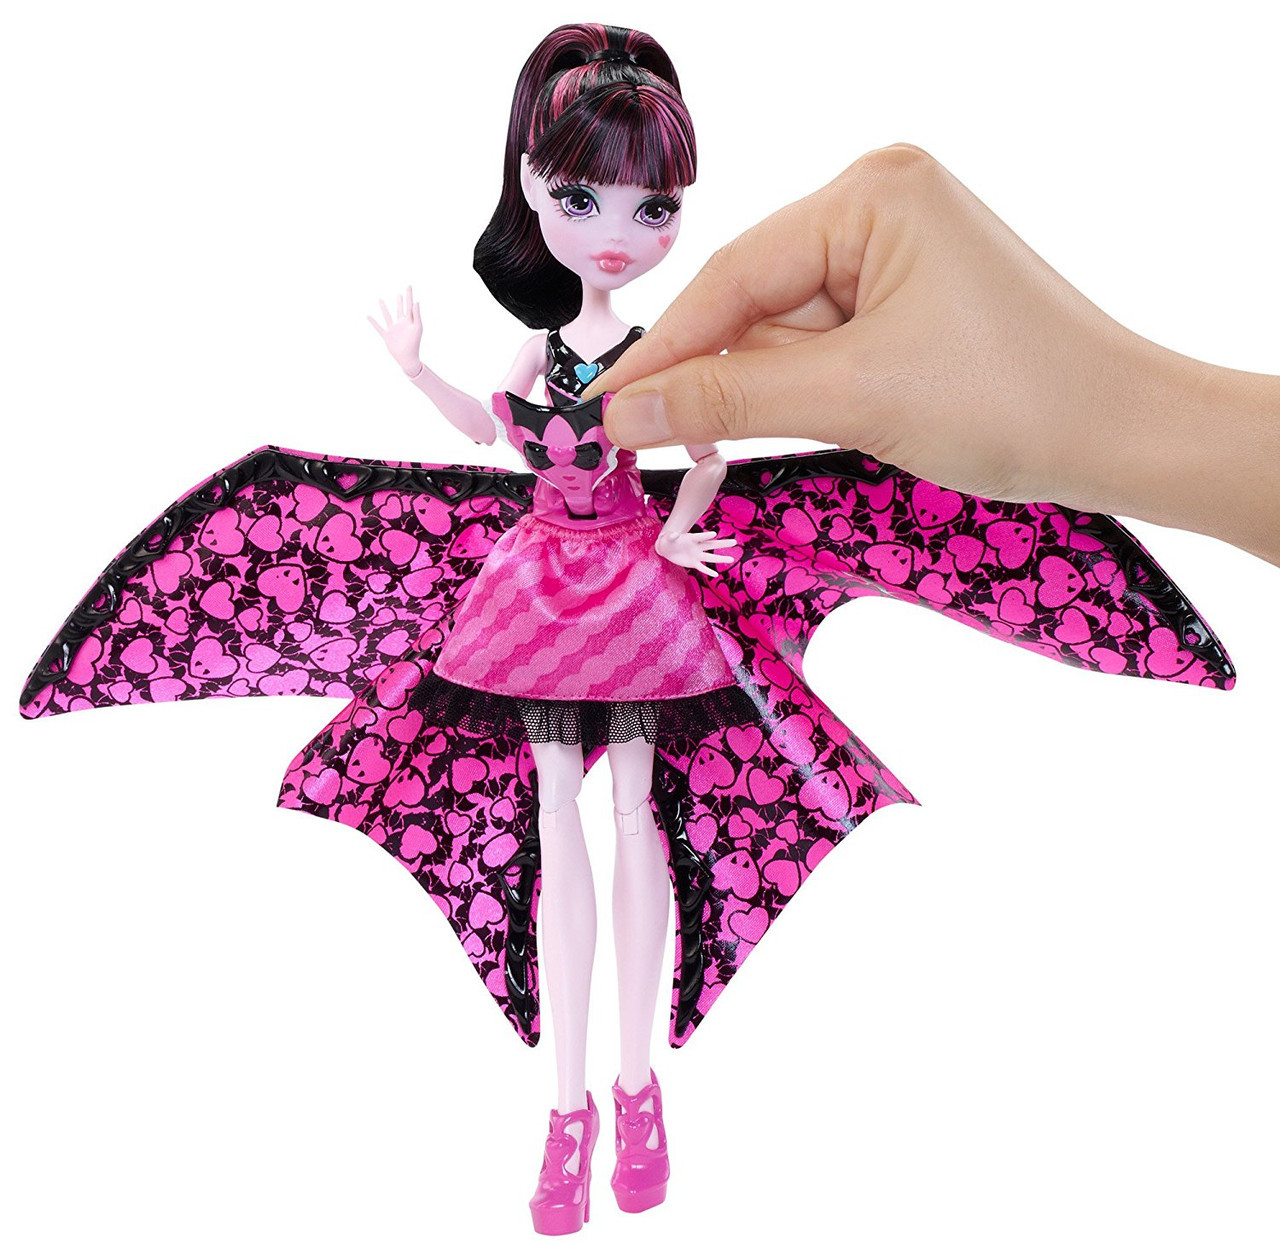 Монстер хай Дракулаура  Летуча Monster high Draculaura Bat Transformation Монстер хай Дракулаура  Летучая мышь